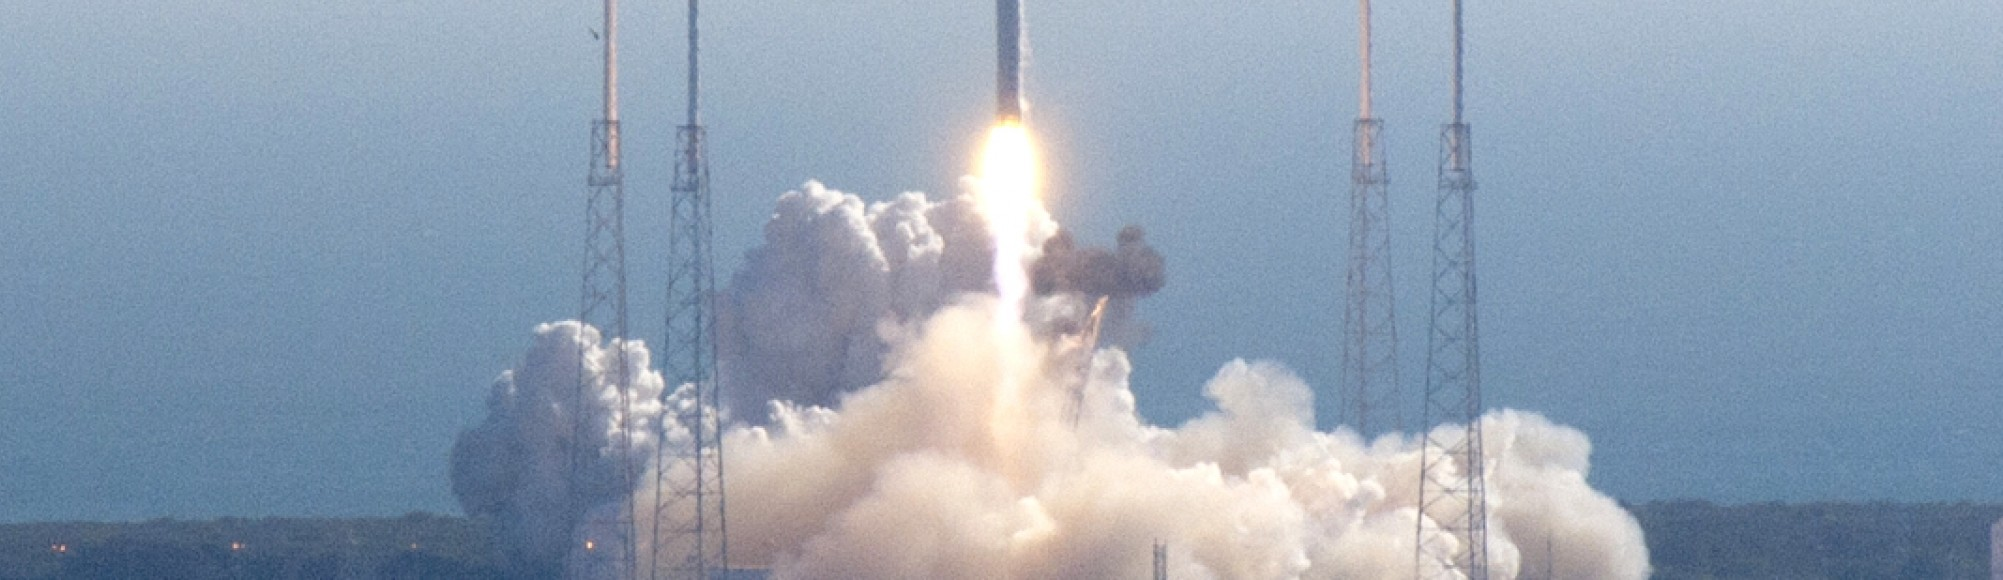 SpaceX Wants to Send a Positively Massive Rocket to Mars